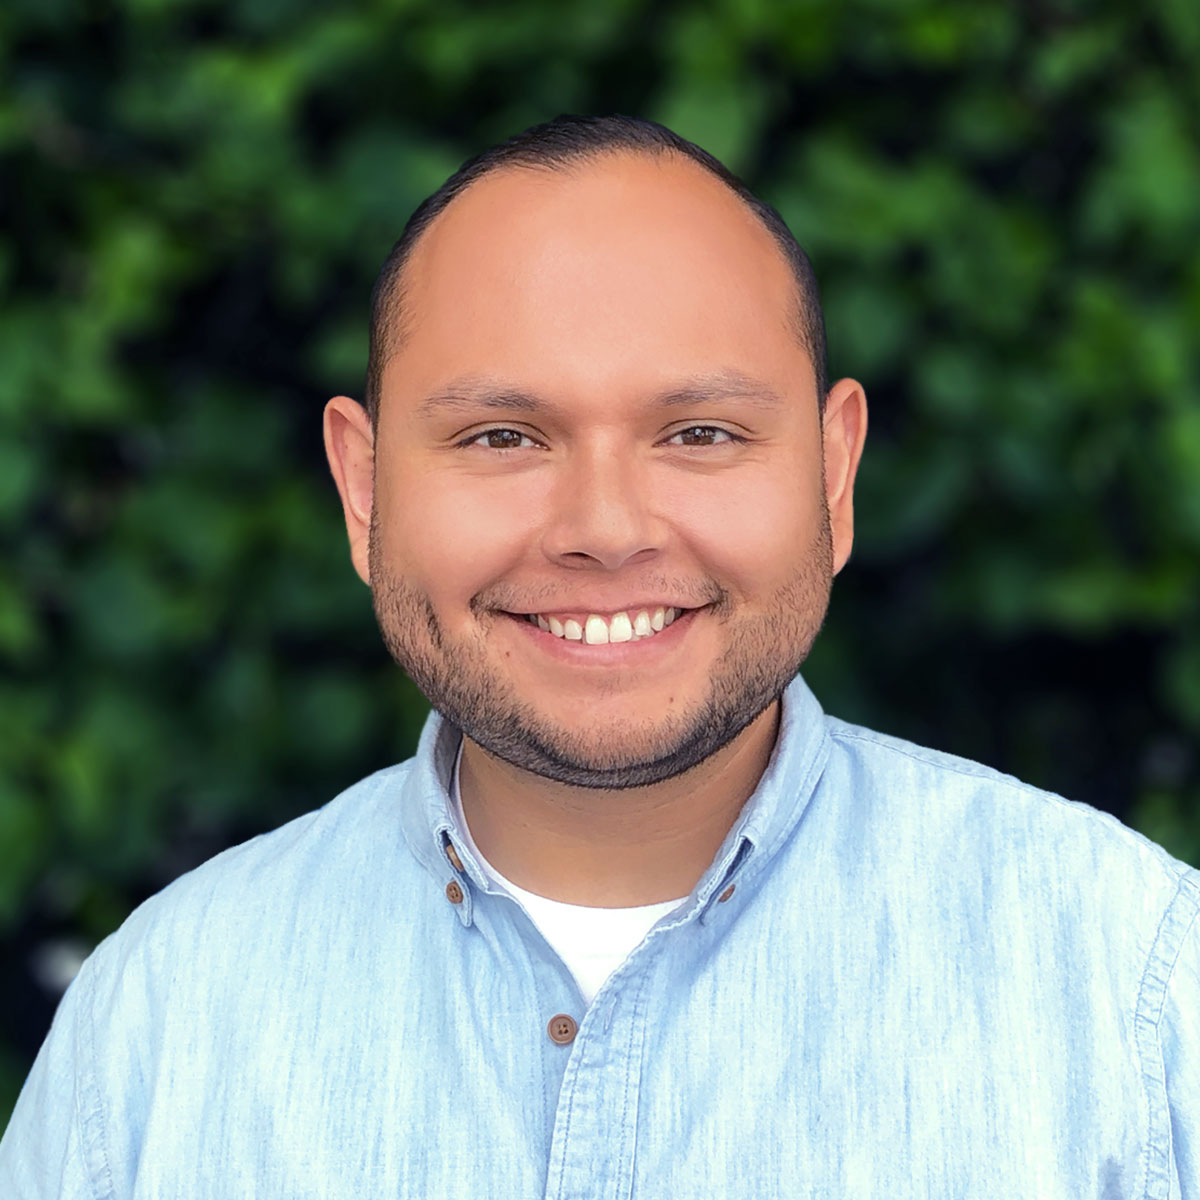 Eric Romero is a design associate at Los Angeles residential architecture firm Tim Barber Ltd.